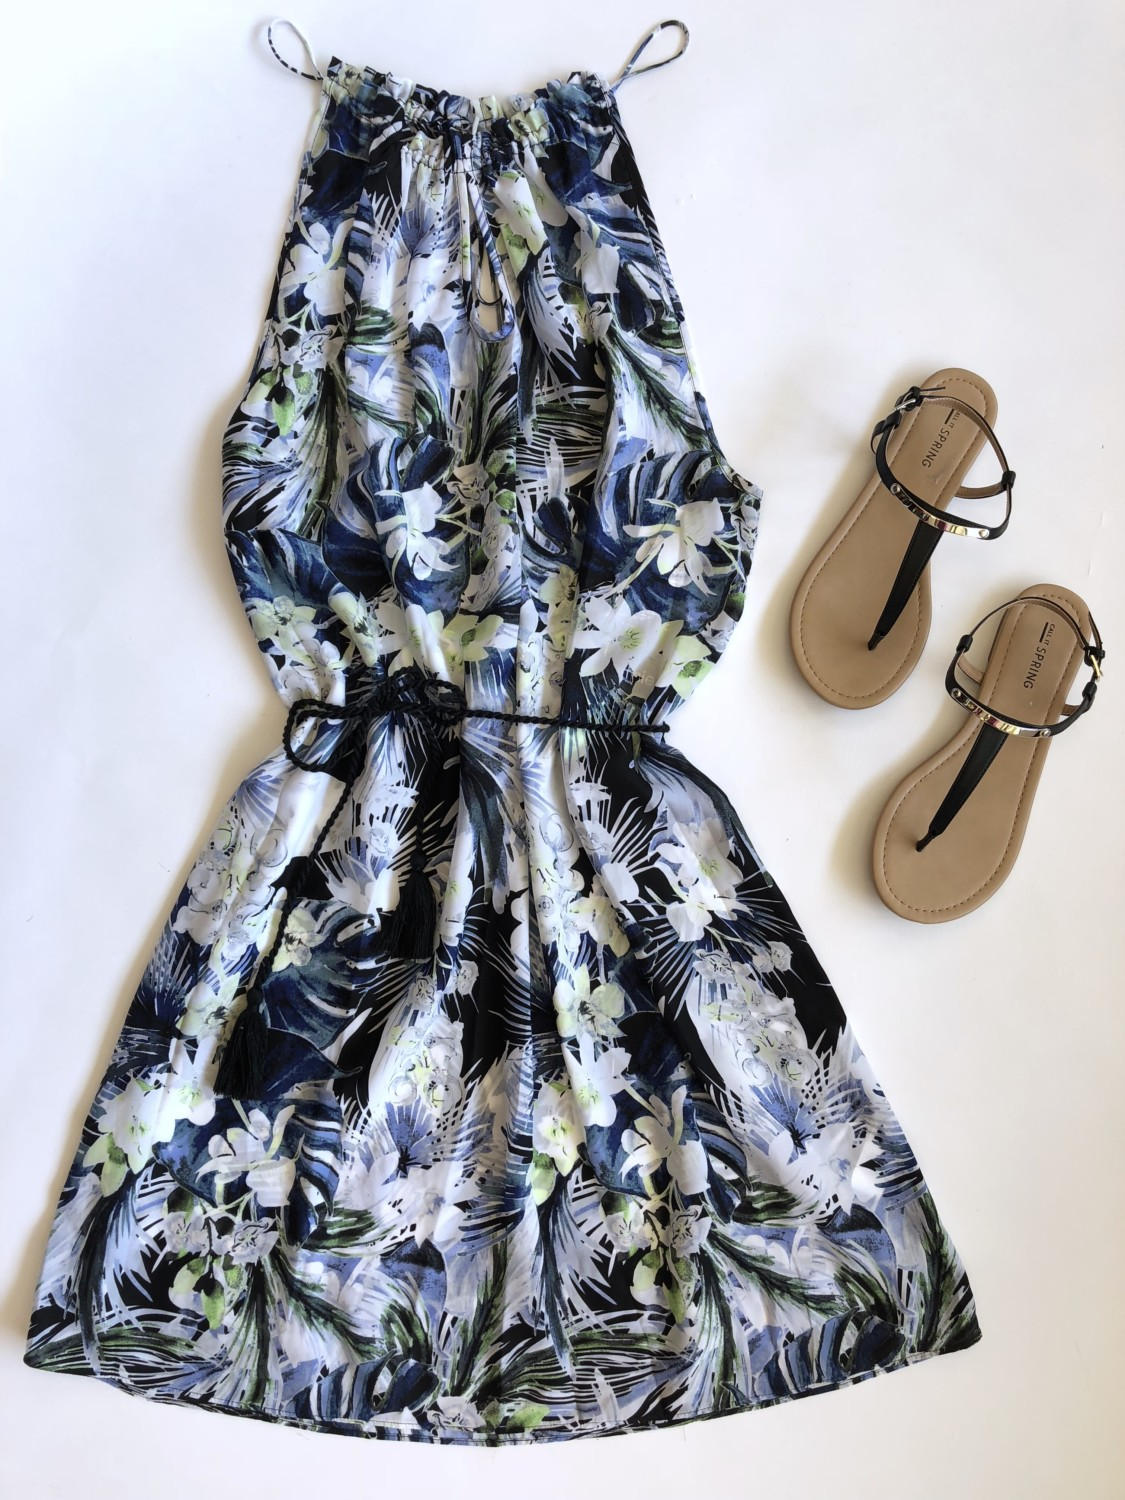 Kensie Dress – Original Retail: $69, CWS: $20